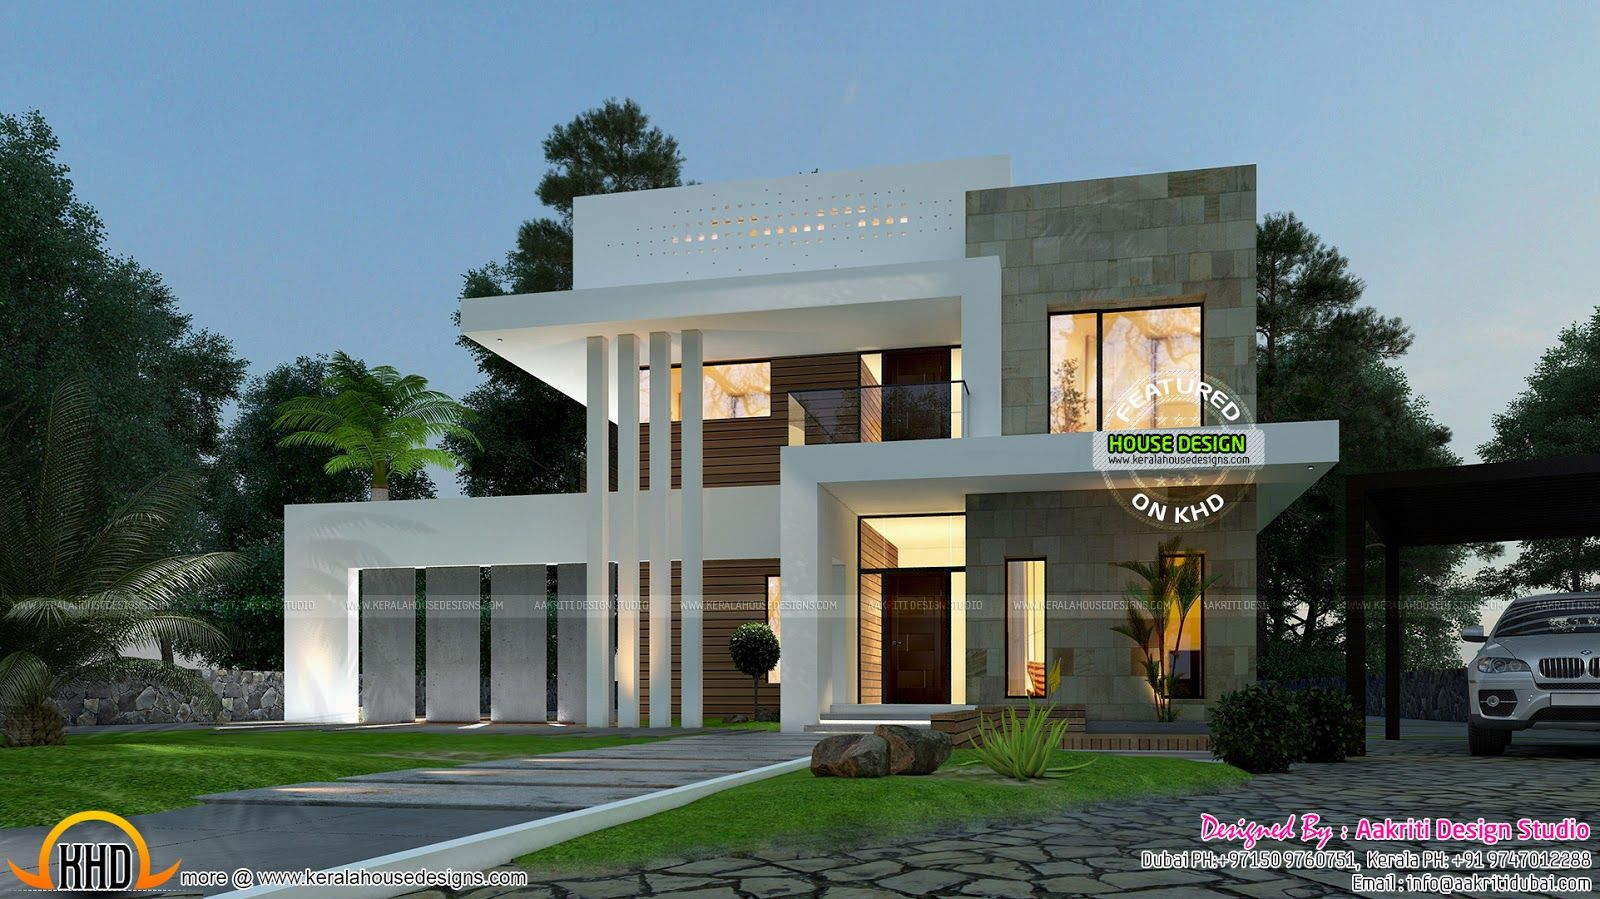 3 Bedroom Modern House Design Glamorous Beautiful 3 Bedroom Contemporary Home  Dream House  Pinterest Design Inspiration